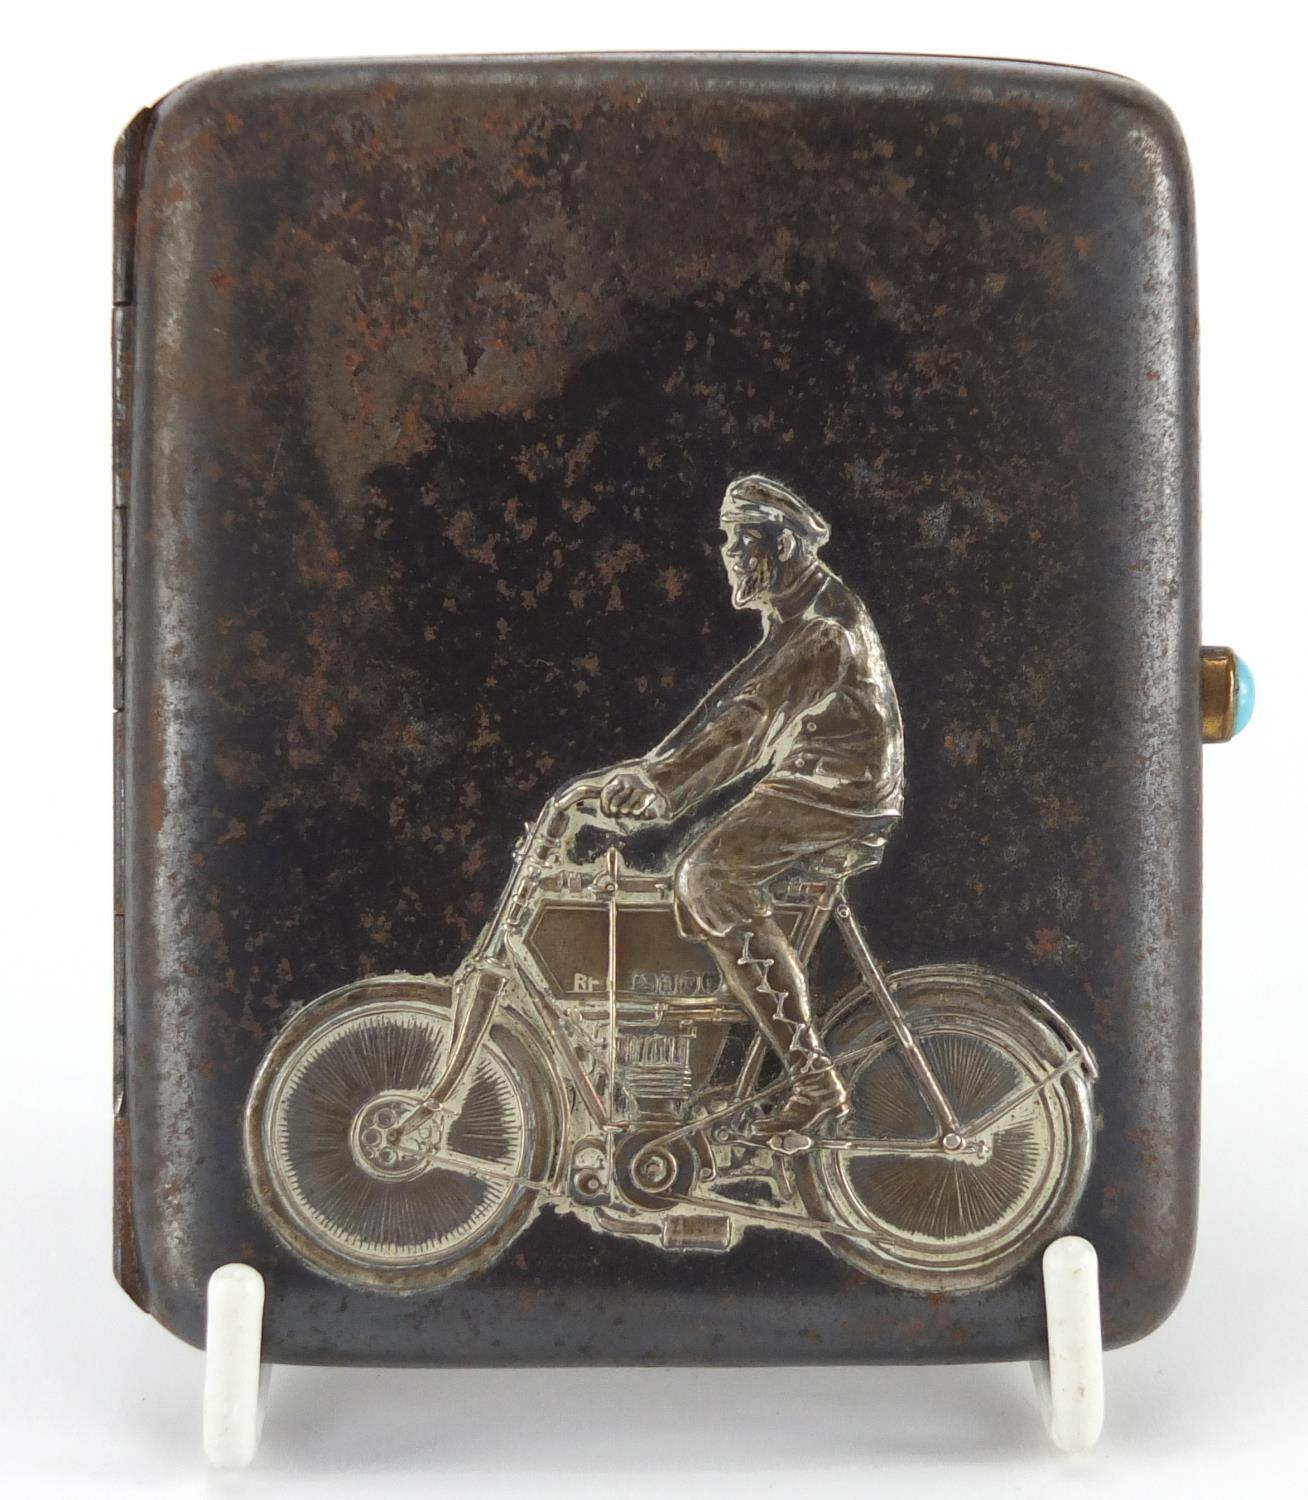 Lot 32 - Rectangular silver and gunmetal cigarette case, decorated with a gentleman on a motorcycle, London